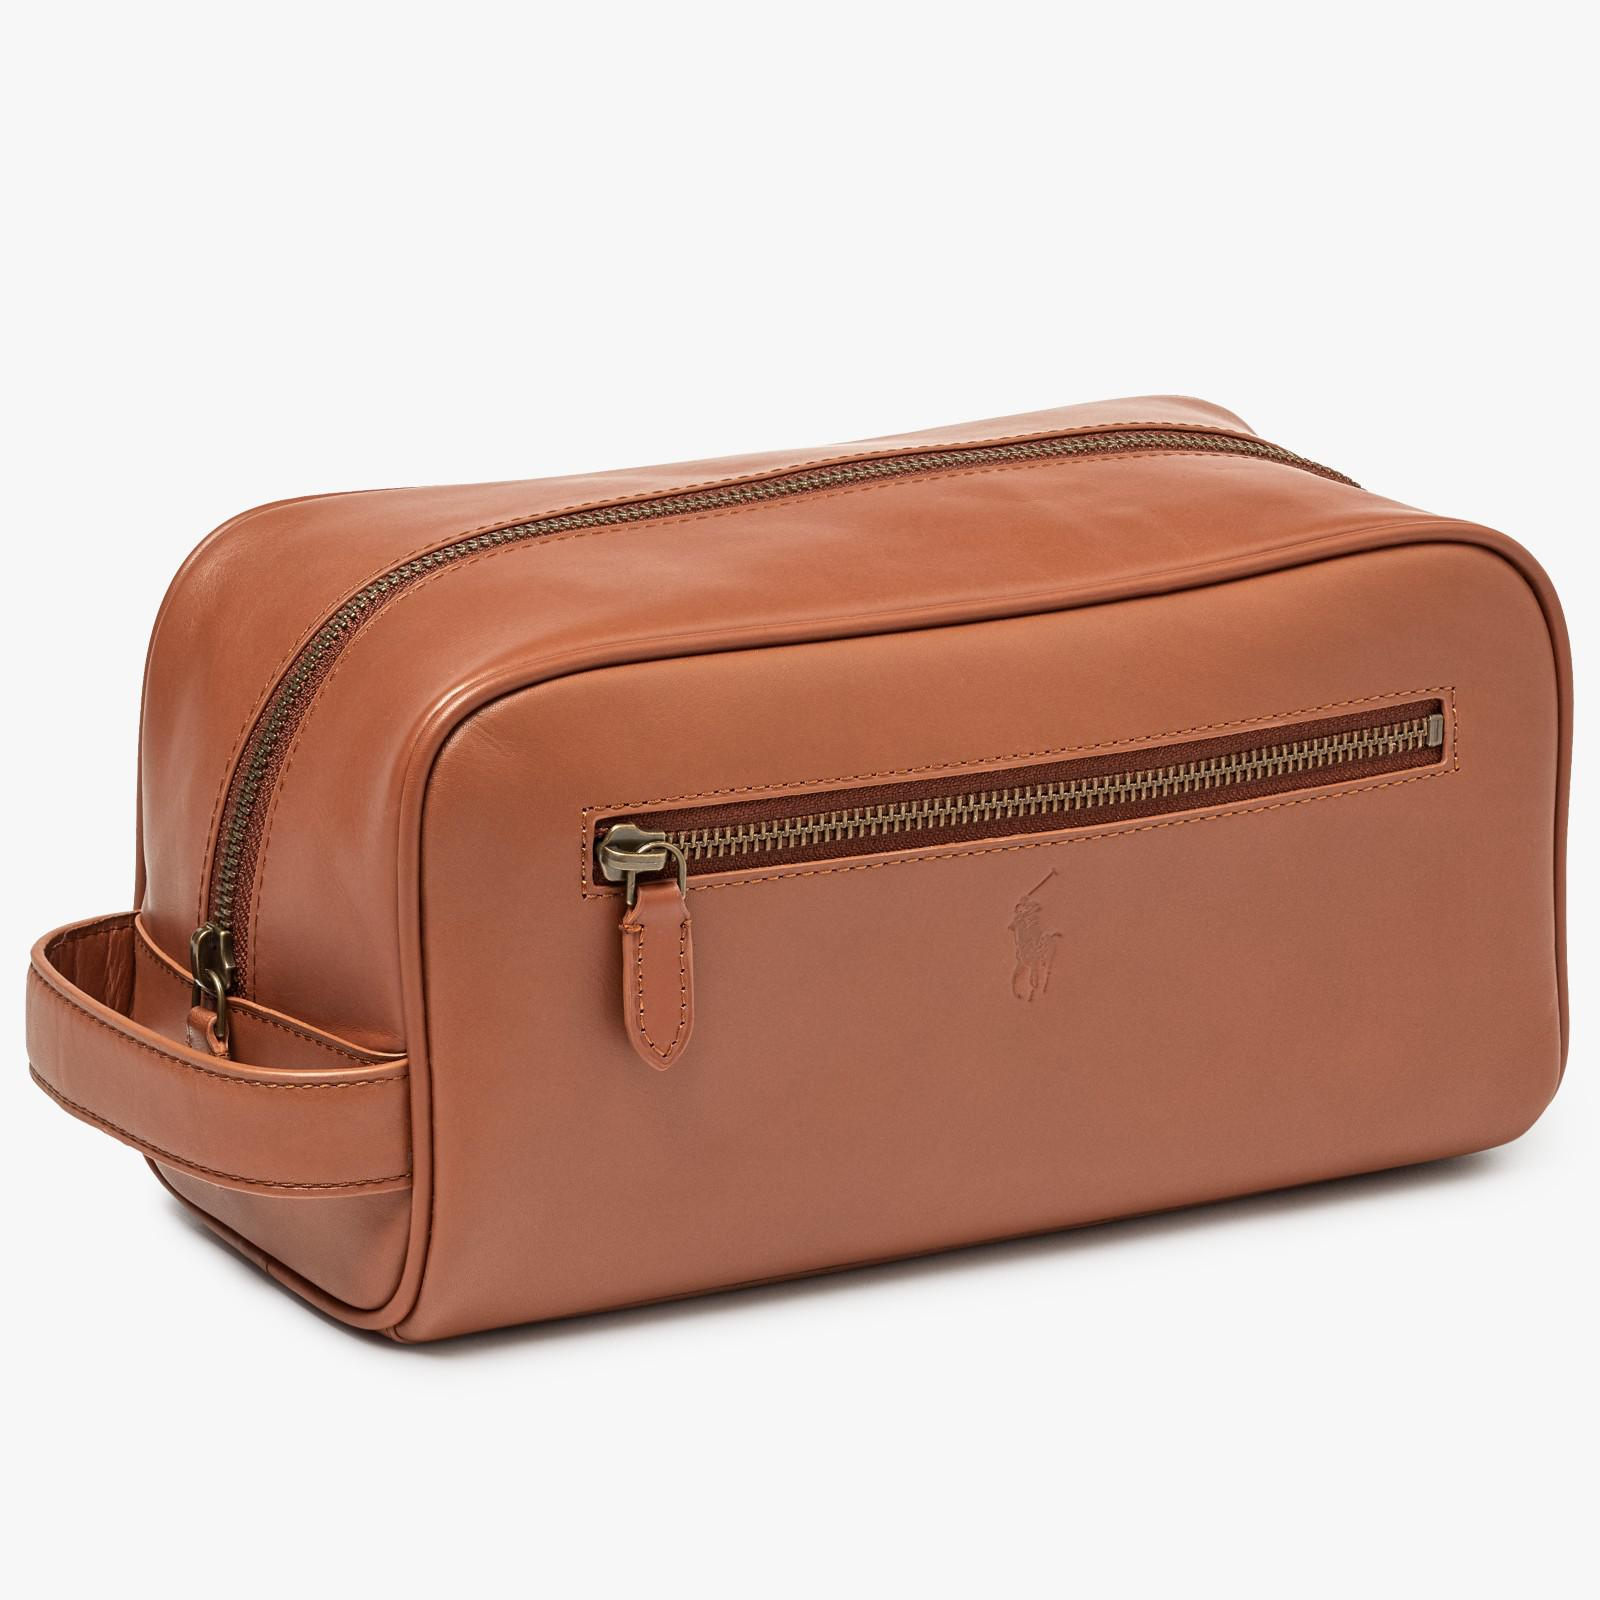 2fda029e8f4c Ralph Lauren Polo Leather Shave Kit Wash Bag in Brown for Men - Lyst